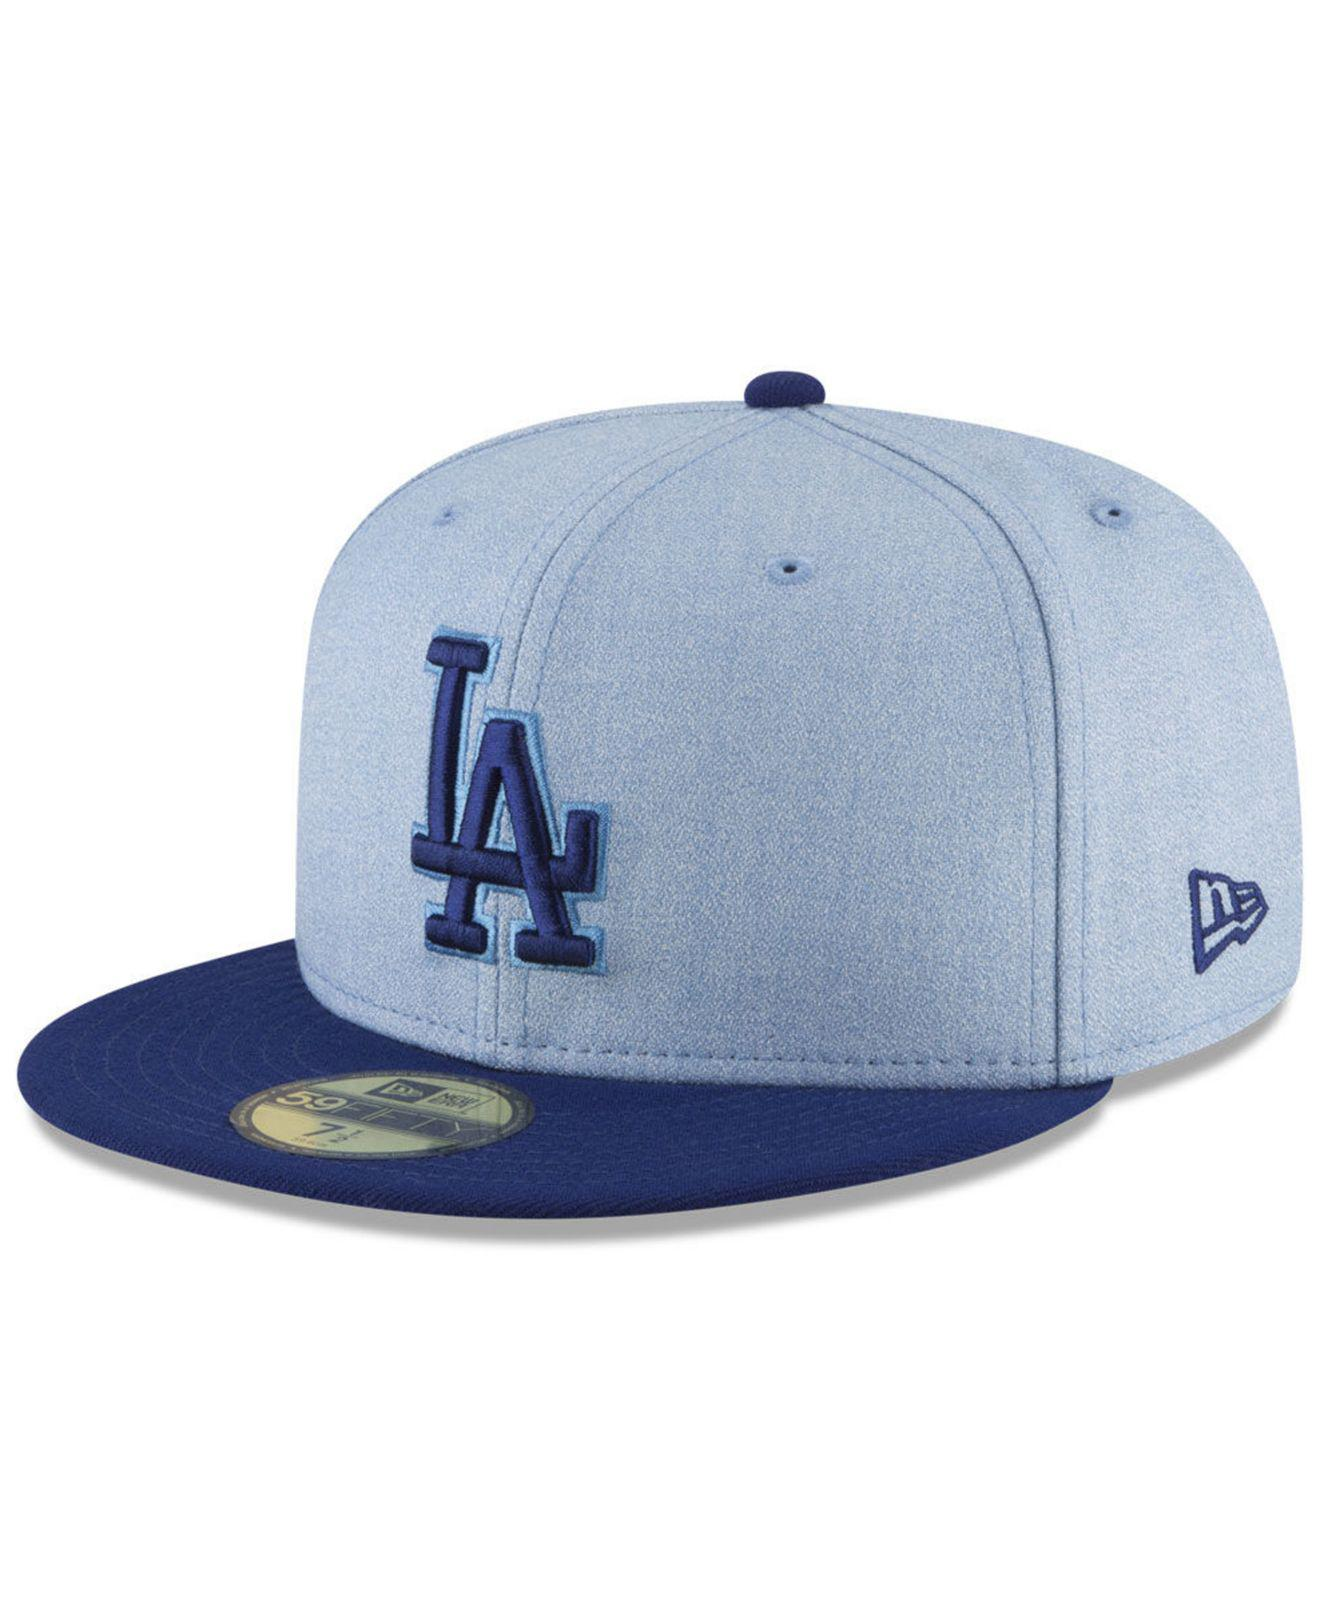 official photos 43e96 3a60e KTZ Los Angeles Dodgers Father s Day 59fifty Fitted Cap 2018 in Blue ...